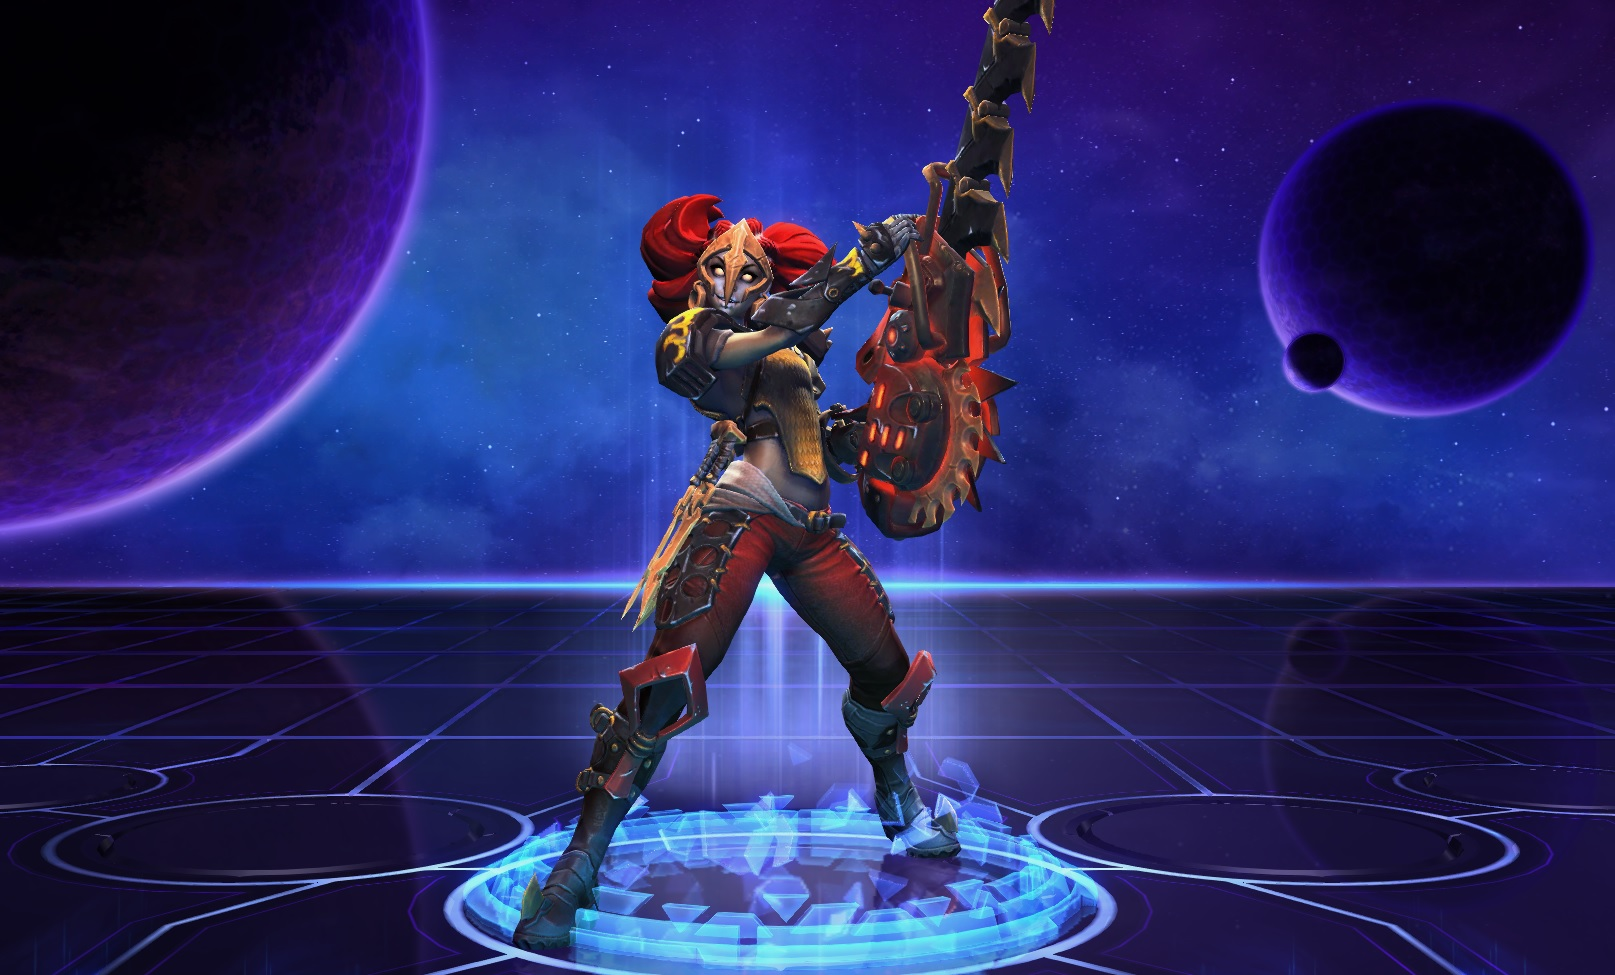 Heroes Of The Storm S Qhira Might Not Be Highly Requested But Her Whip Sword Is Welcome Thank you to everyone for your. heroes of the storm s qhira might not